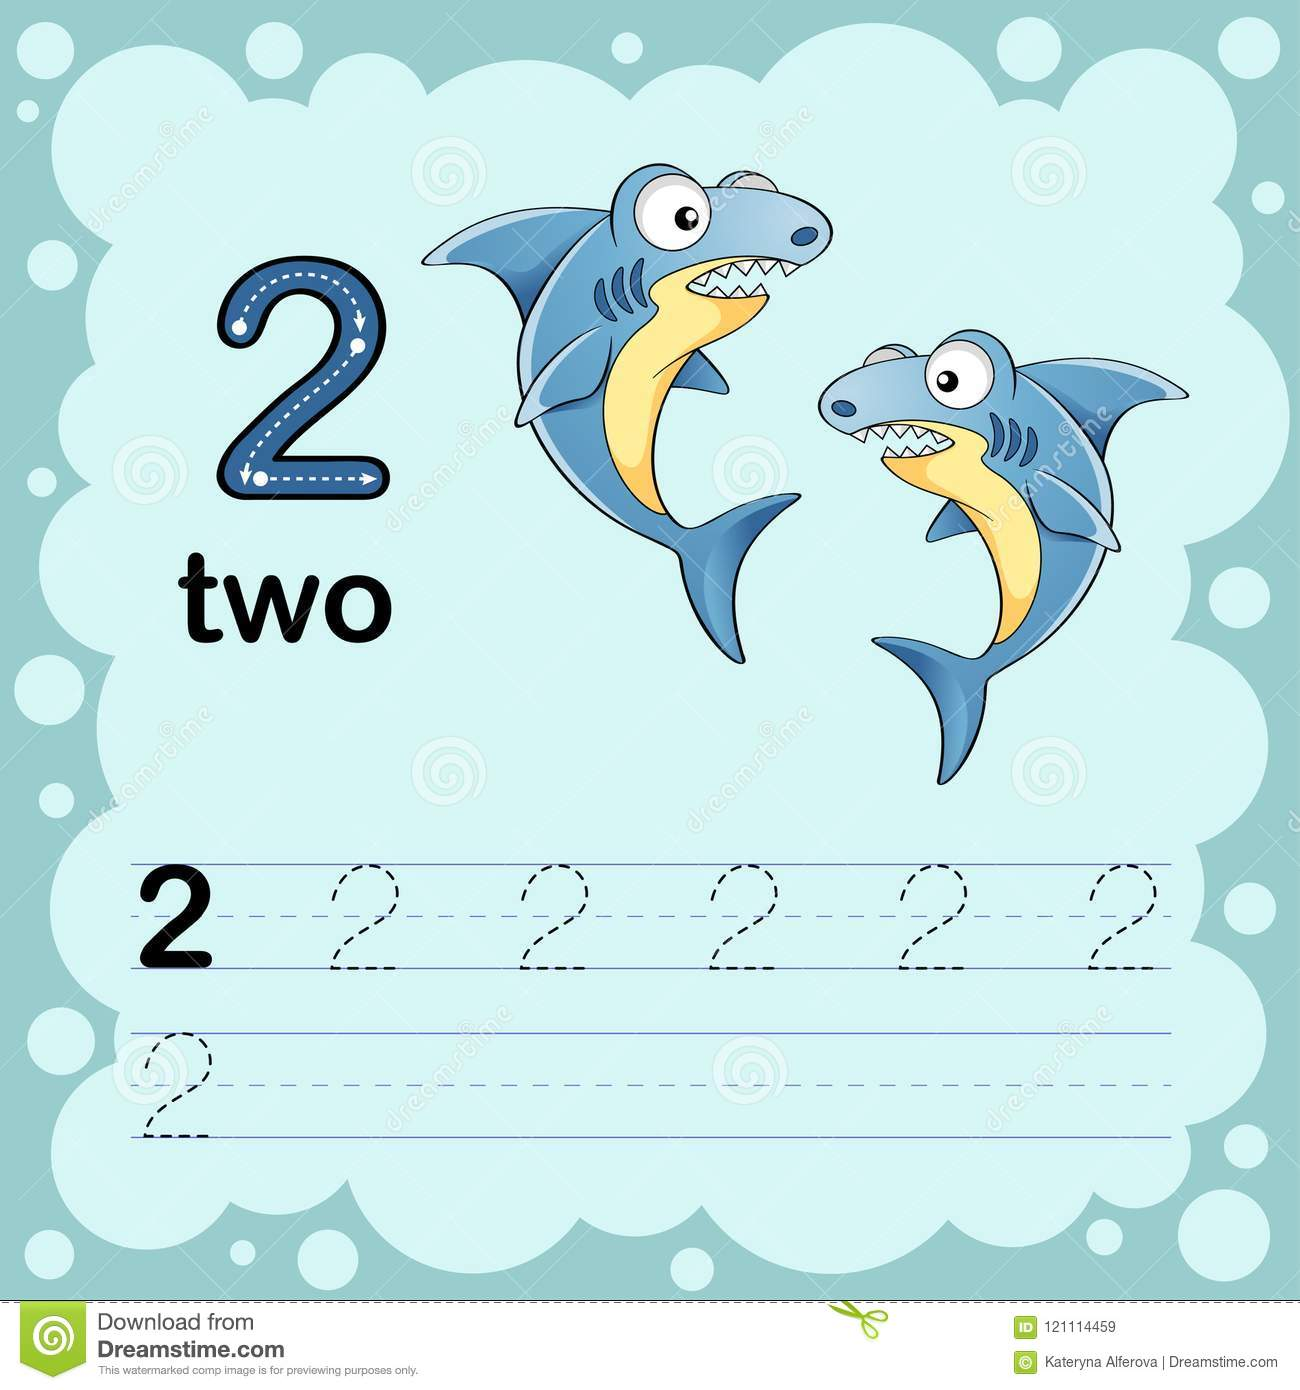 Educational Illustration To Learn How To Count And Write A Number Two Worksheet For